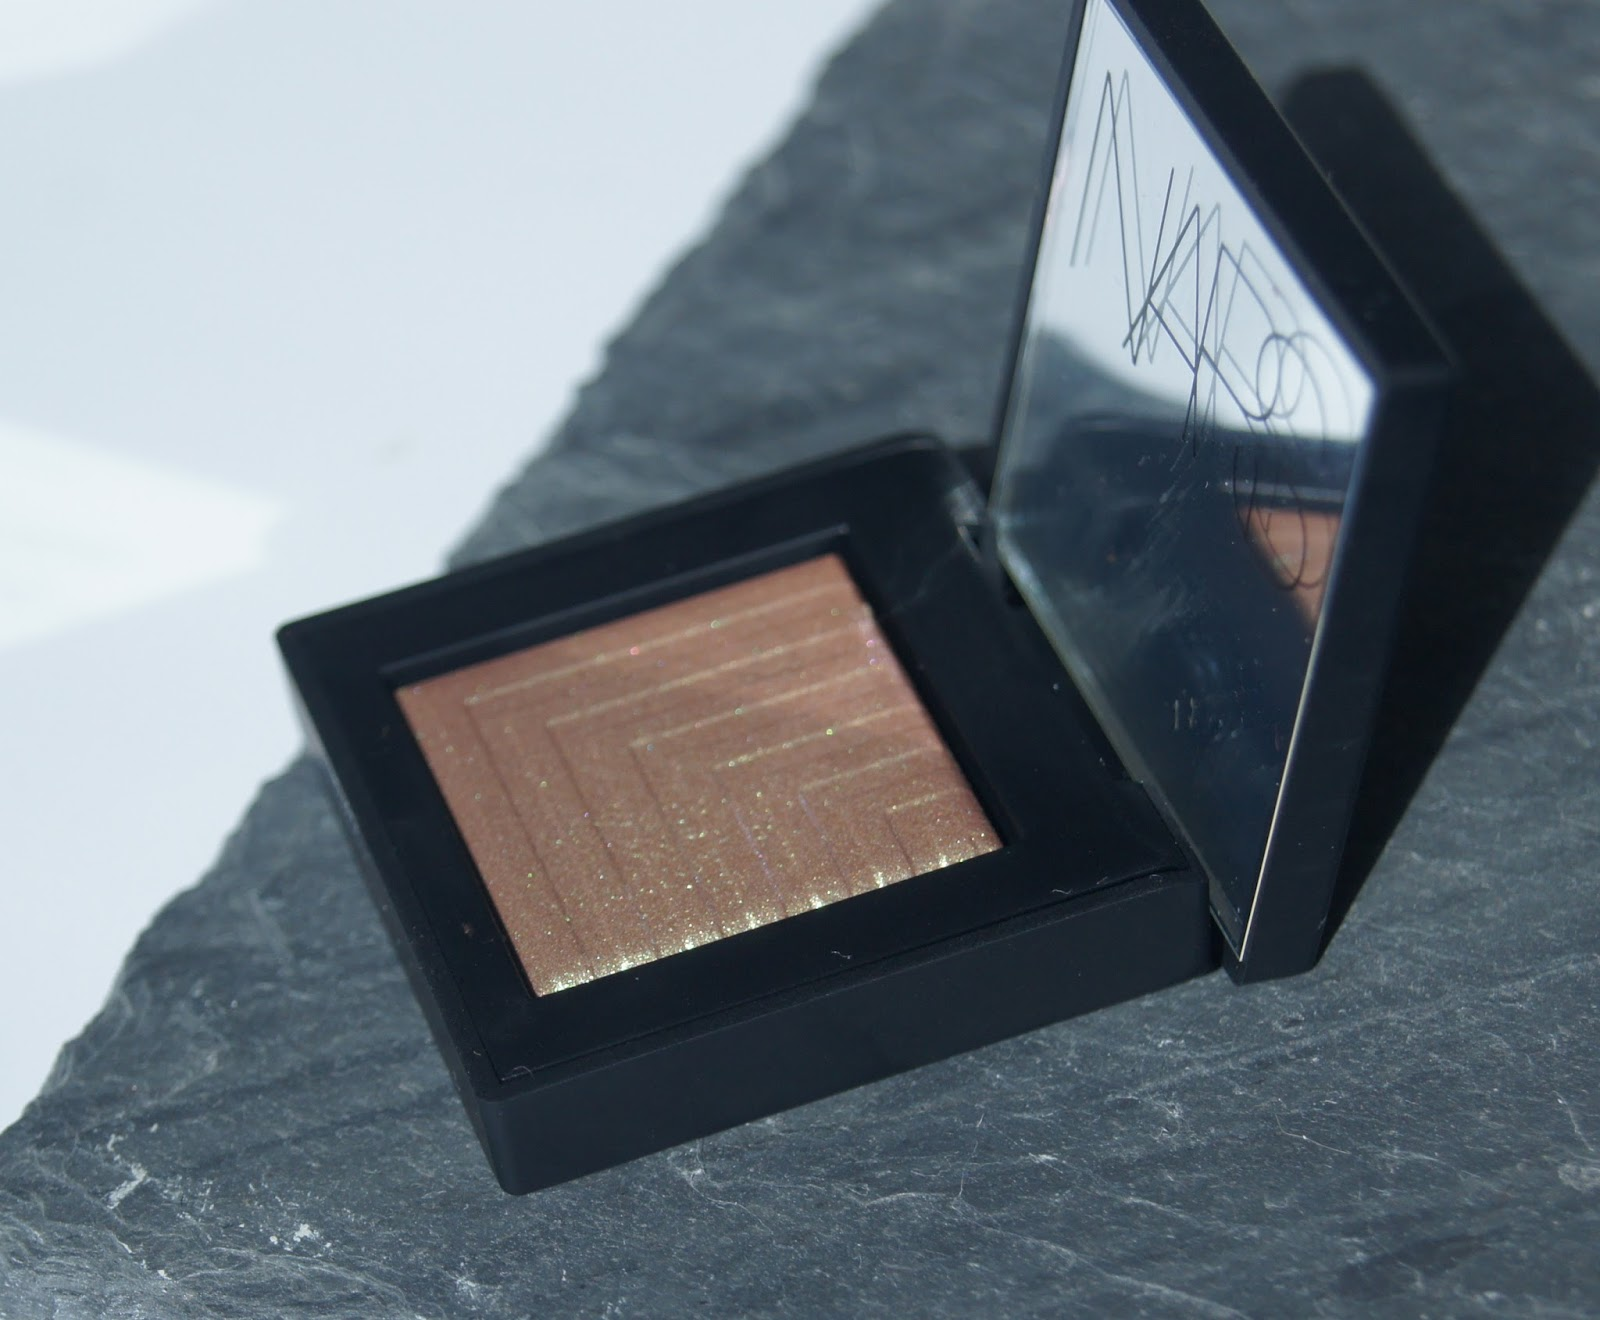 NARS Dual Intensity Eyeshadows-Pasiphae